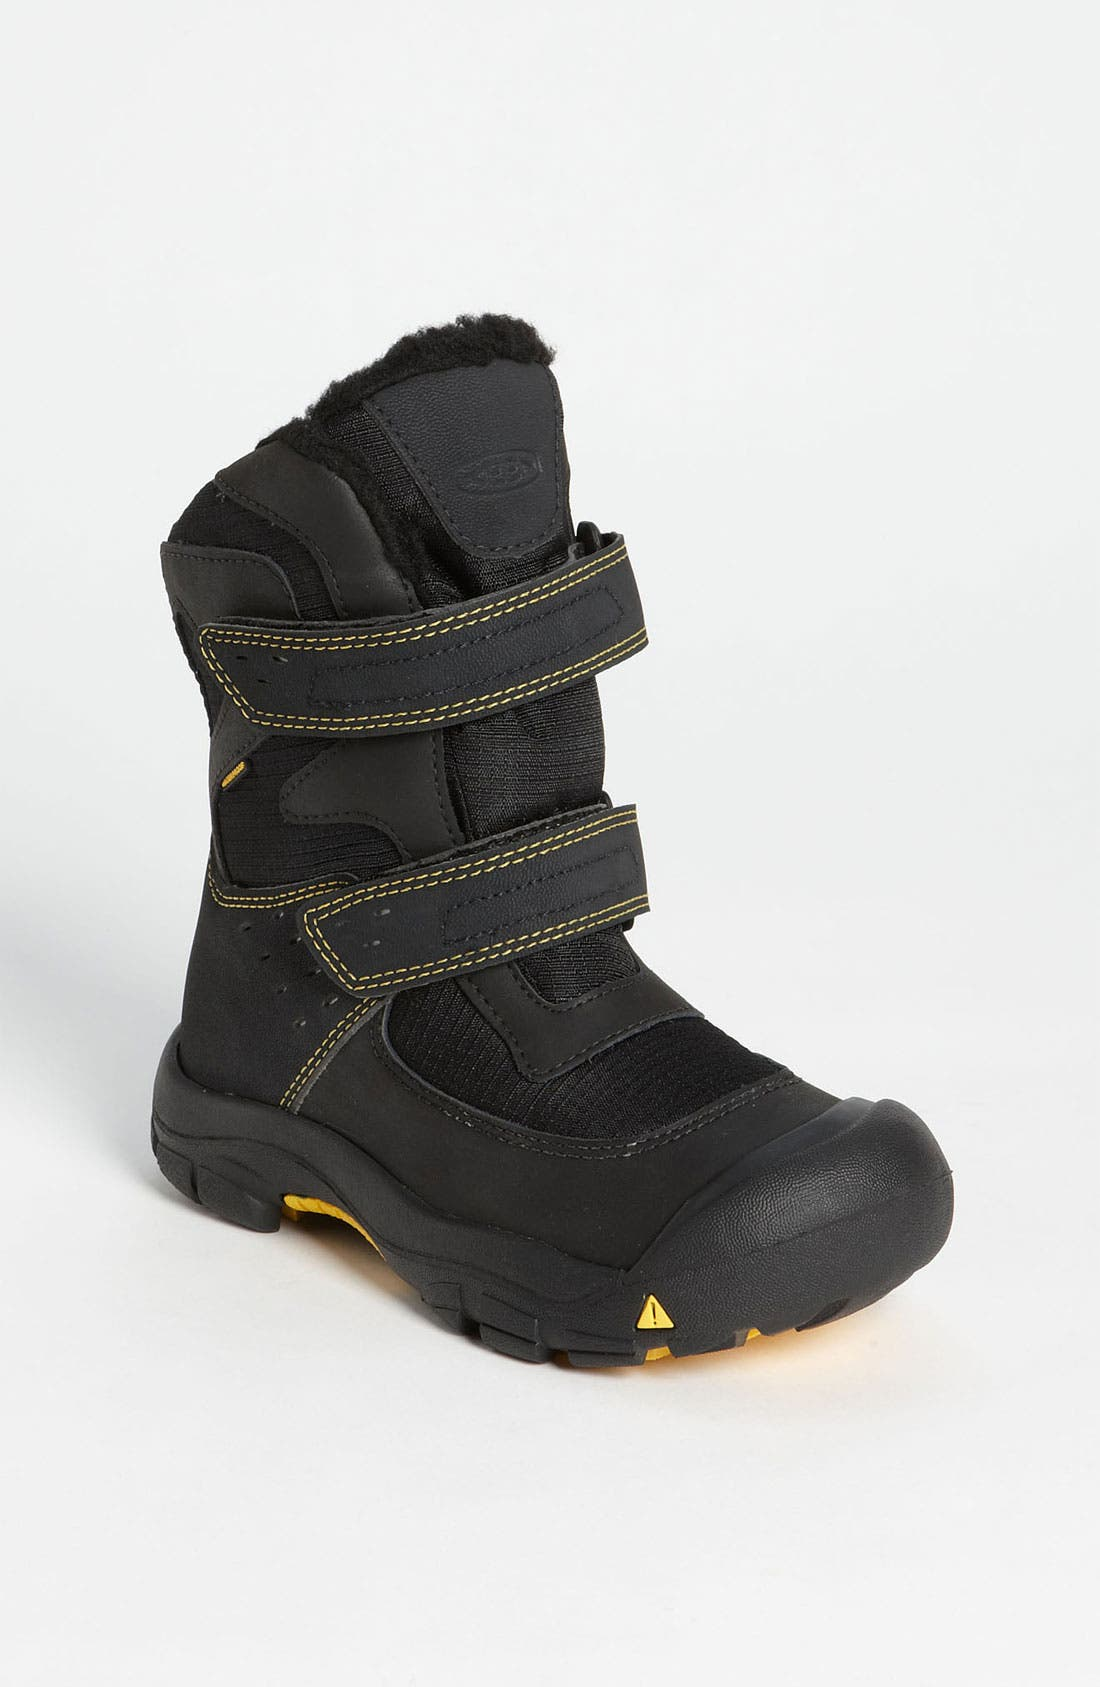 Alternate Image 1 Selected - Keen 'Kalamazoo' Snow Boot (Toddler, Little Kid & Big Kid)